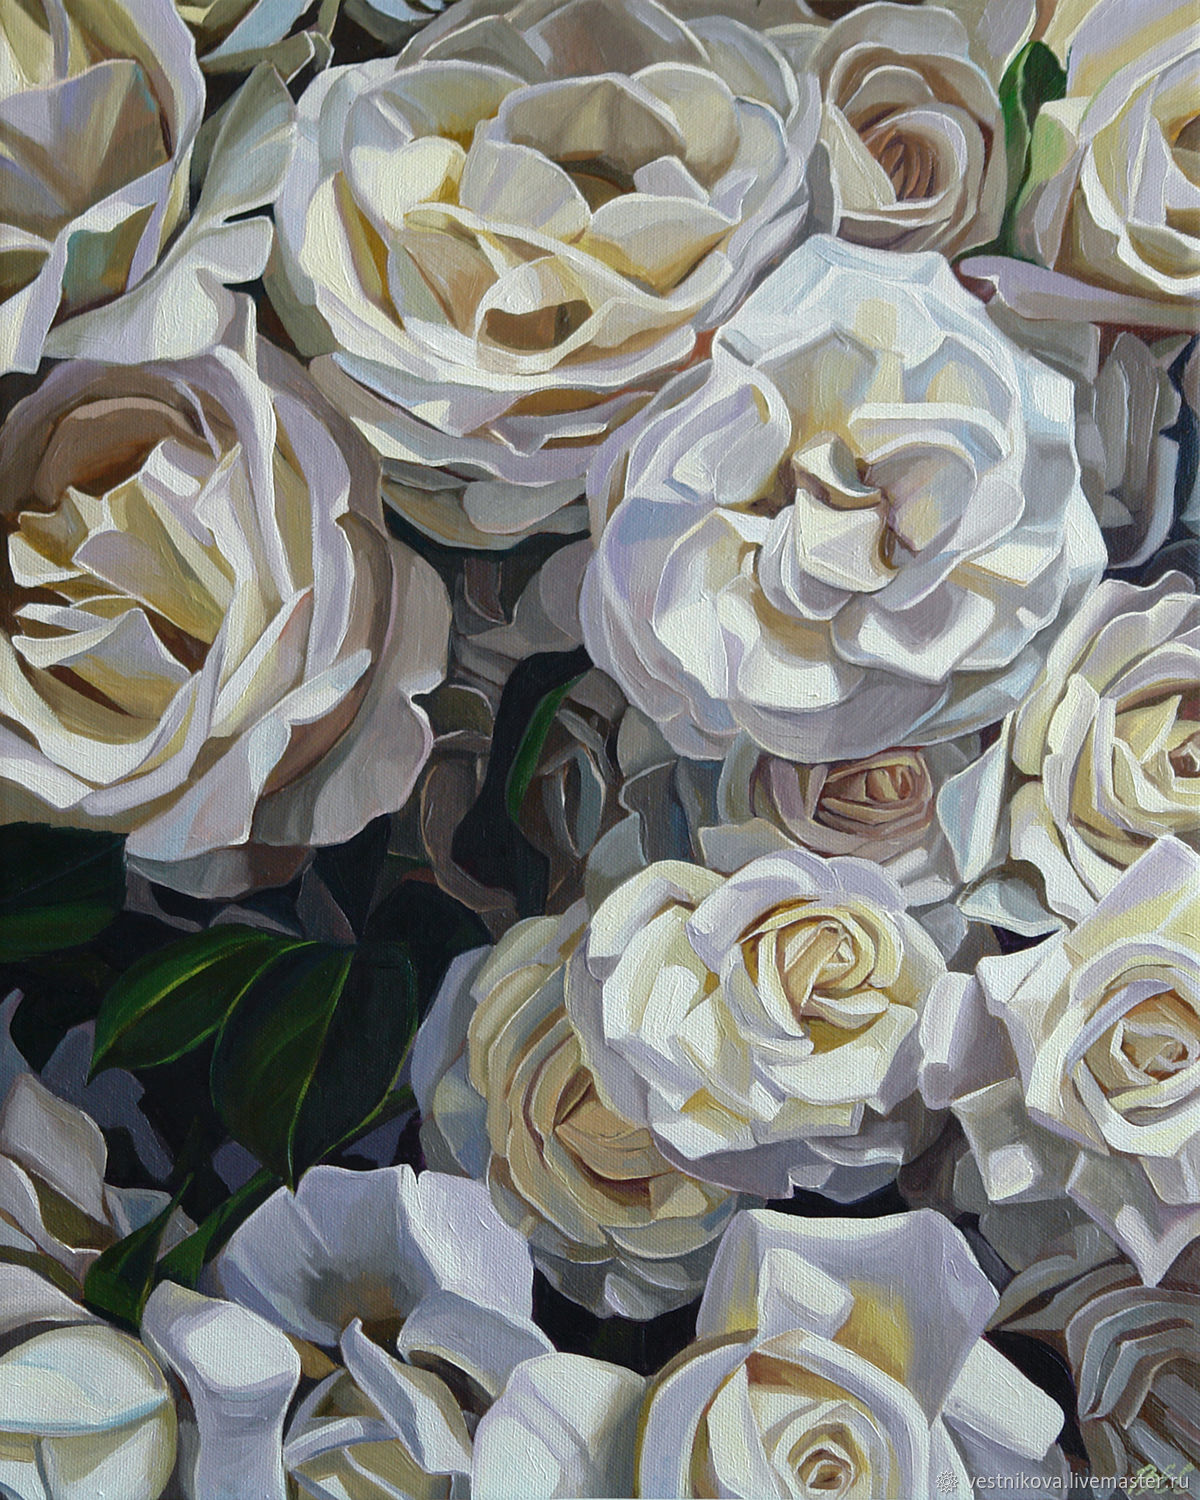 Painting 'White roses' oil on canvas 40h50cm, Pictures, Moscow,  Фото №1